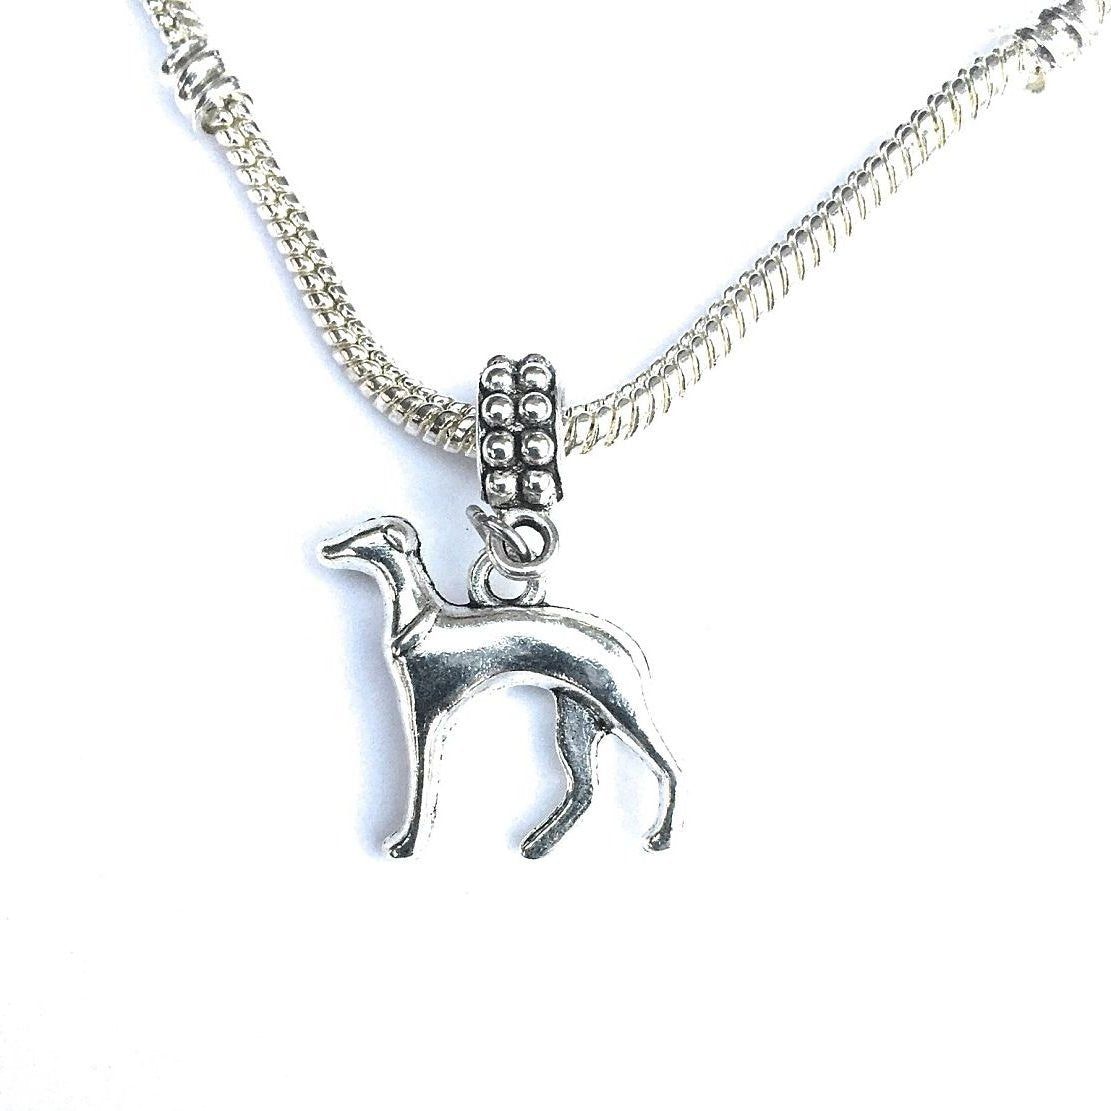 Handcrafted Silver Greyhound Dog Charm Bead for Bracelet.